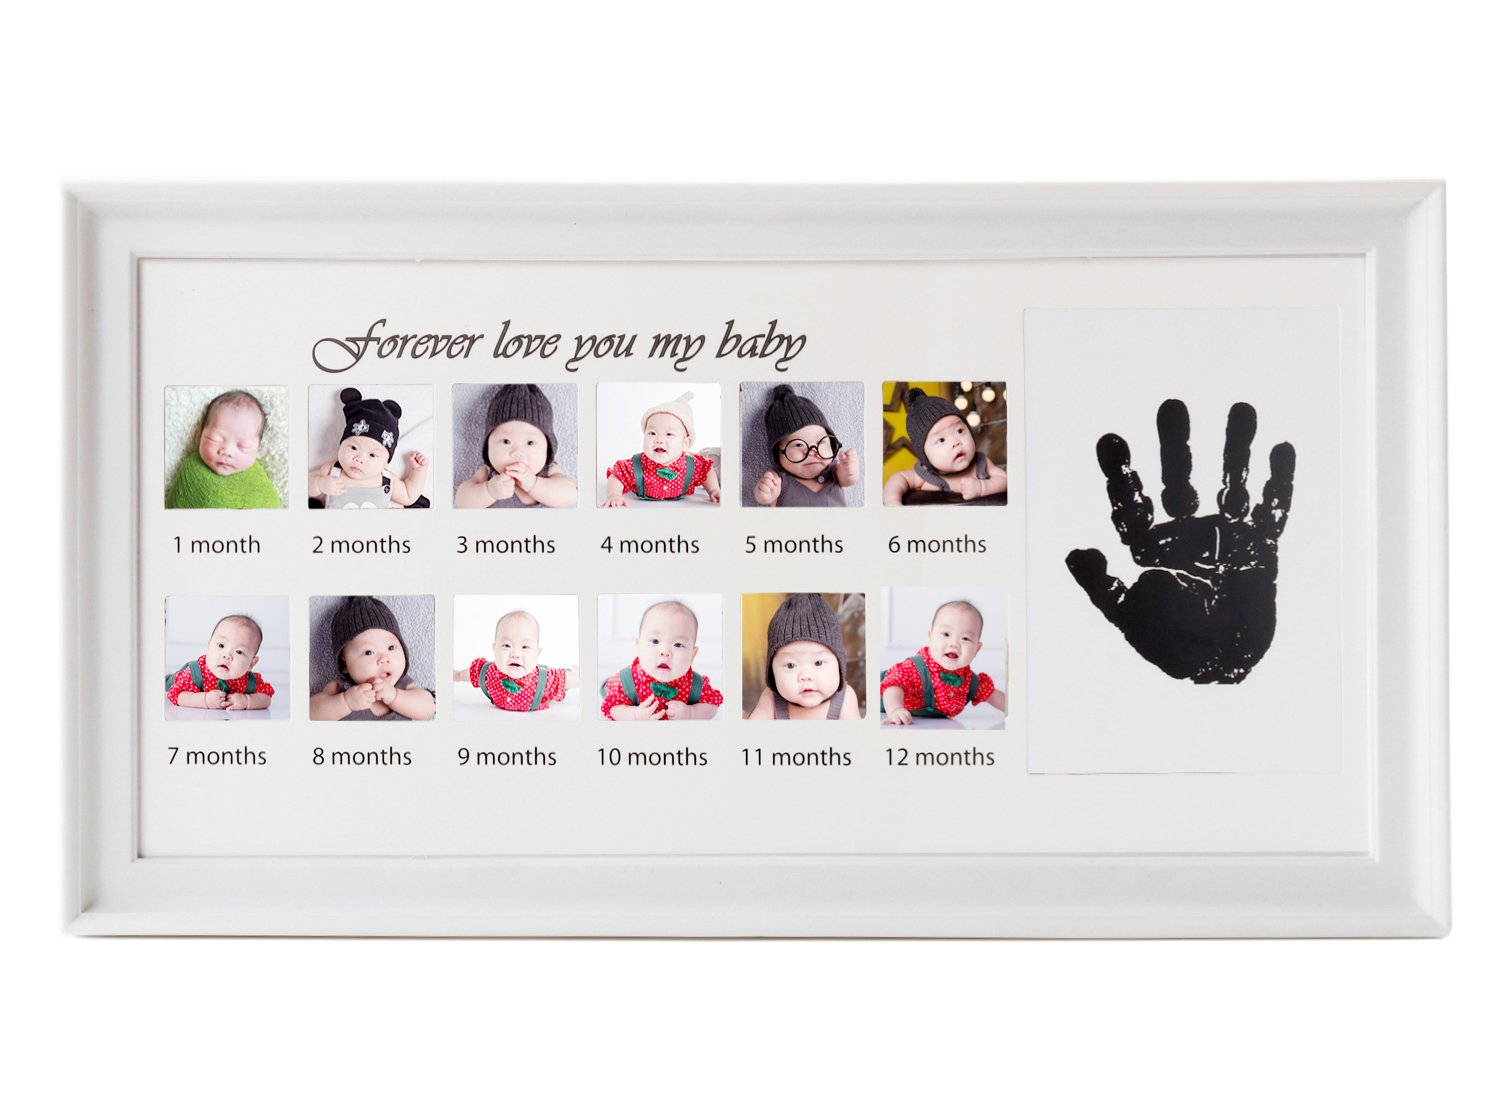 Baby Handprint Kit and Footprint Photo Frame for Newborn Boys and Girls, Baby Shower Gift, Memorable Keepsake Feiyar